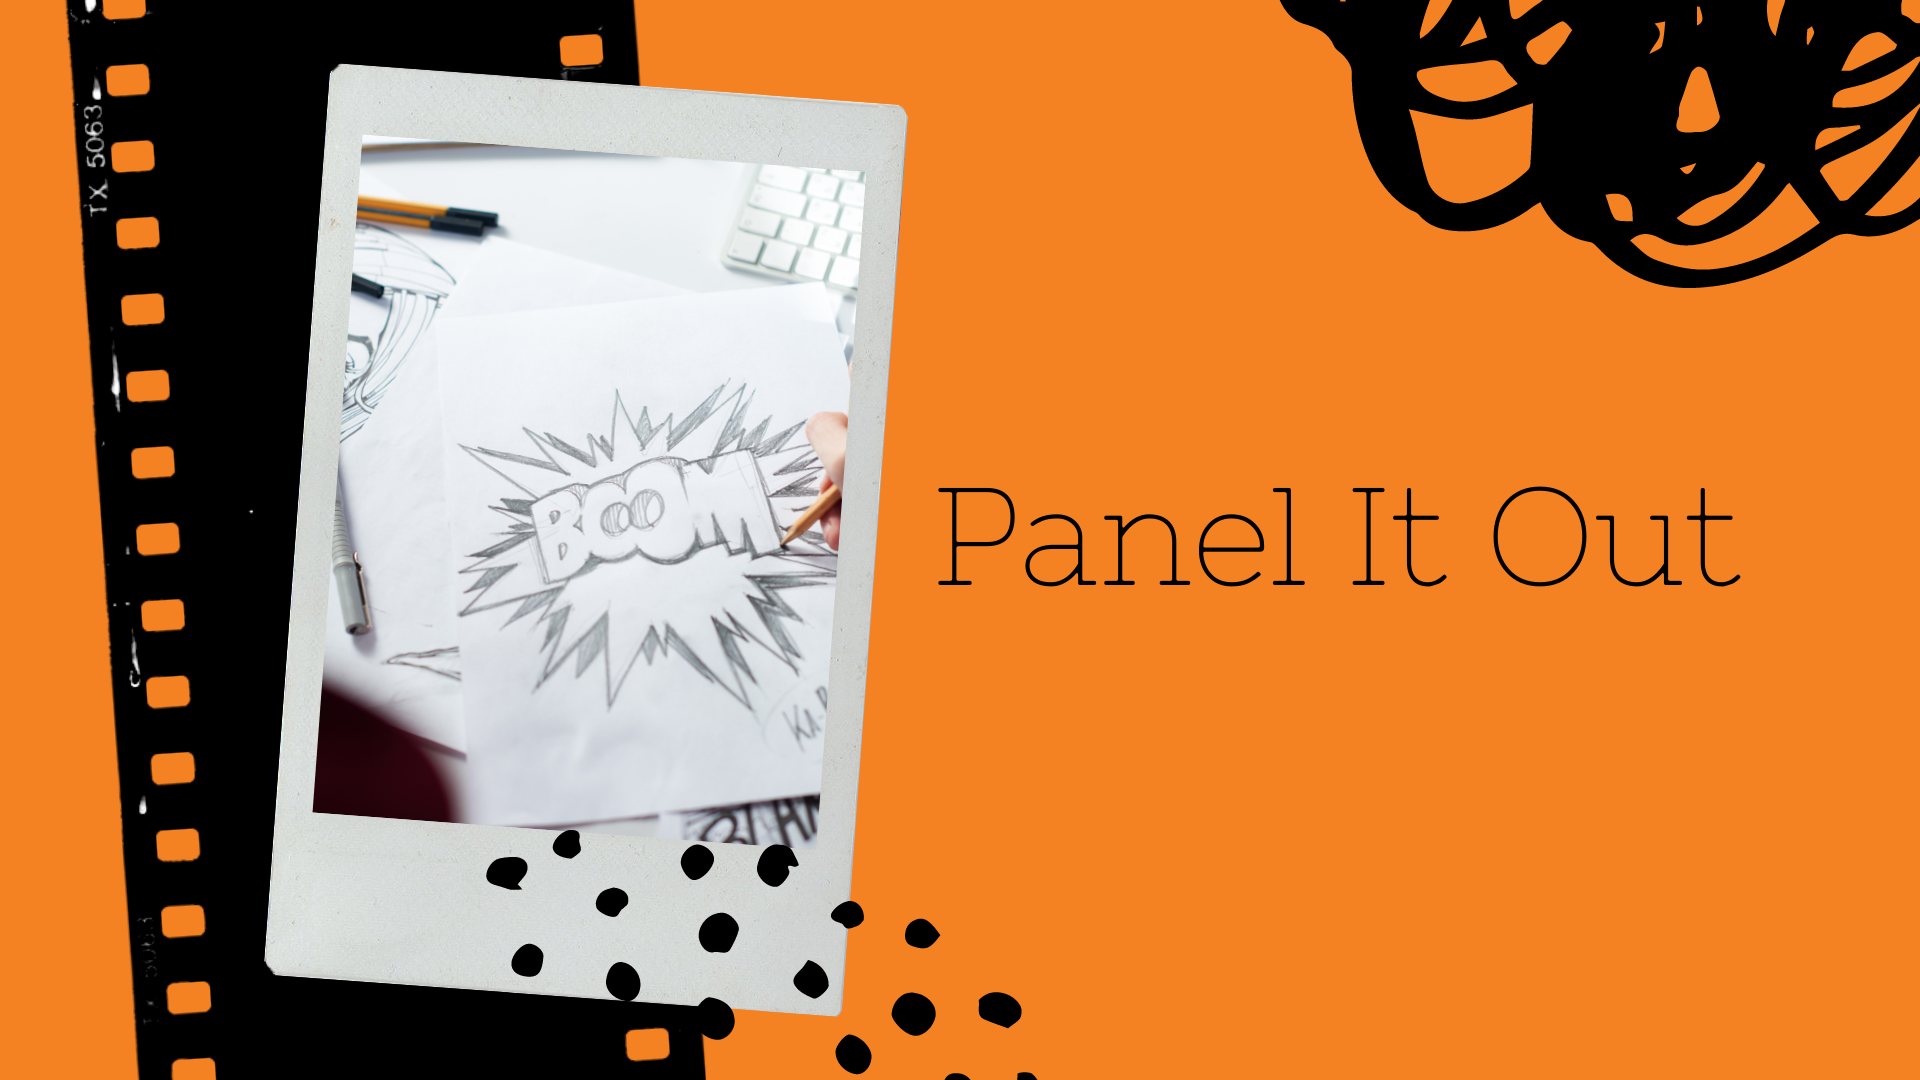 Panel It Out